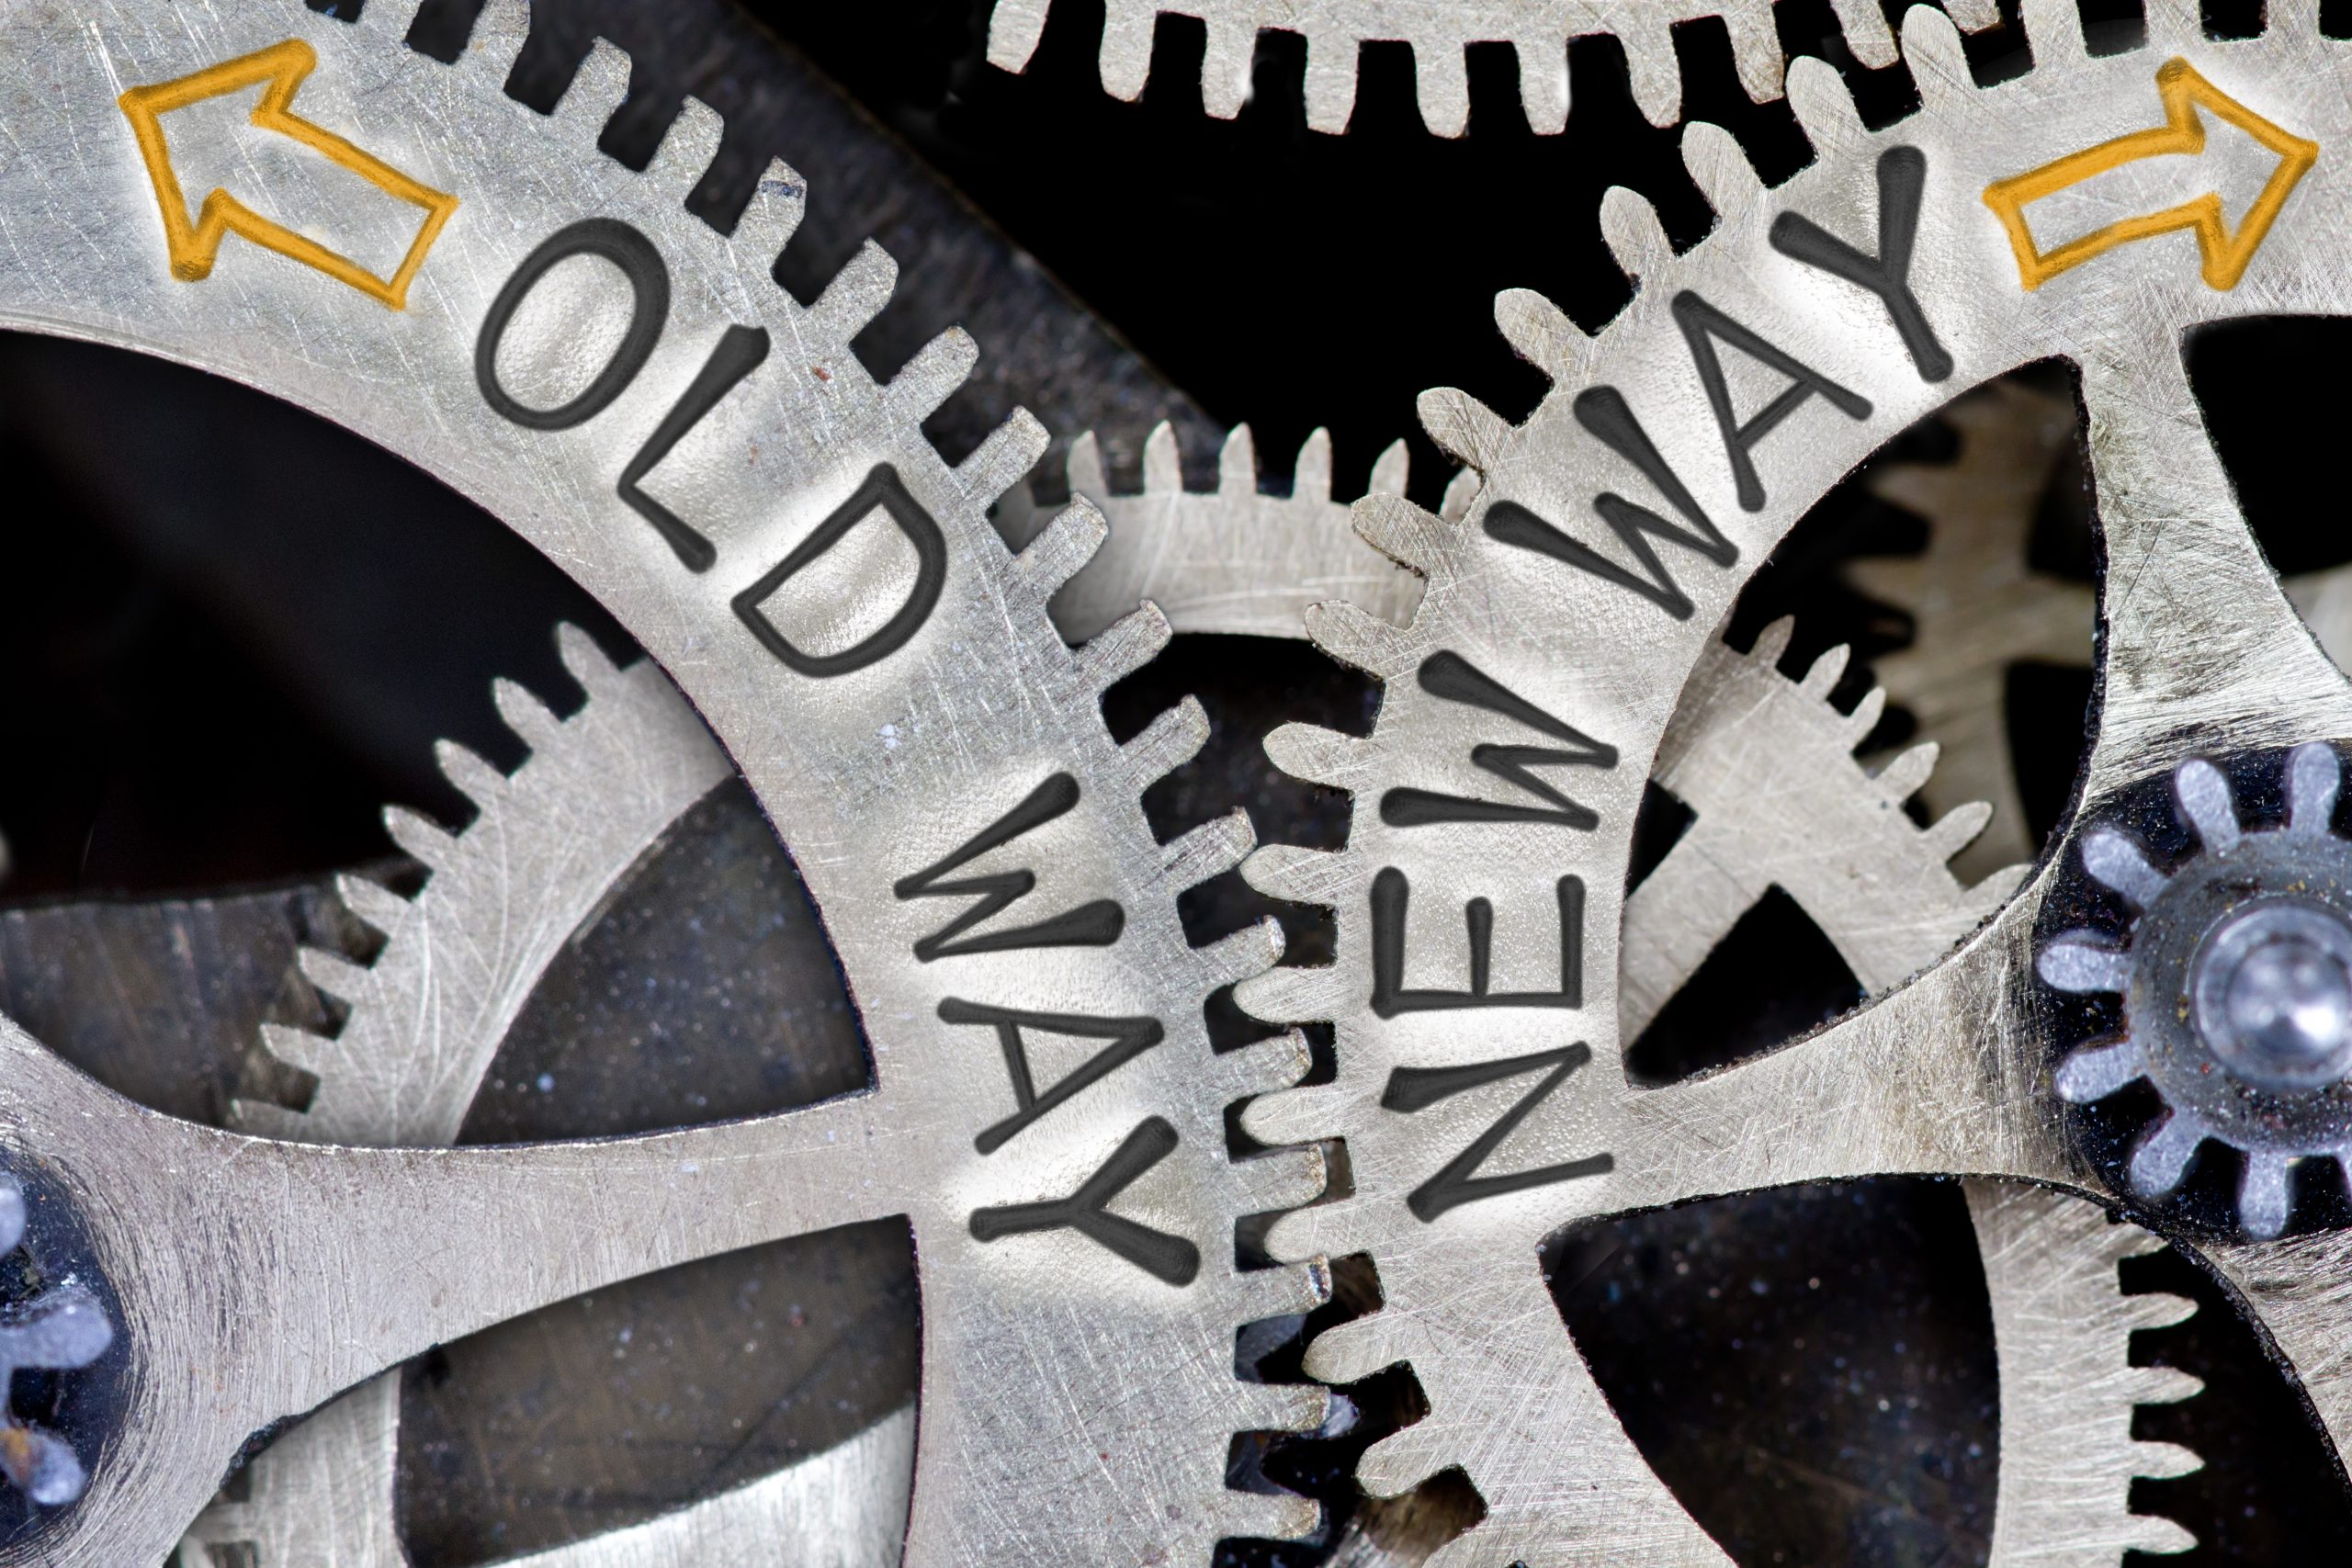 """Two metal, interlocked gear wheels, with the left wheel moving counter-clockwise and labelled """"OLD WAY"""" and the right wheel moving clockwise and labelled """"NEW WAY"""". Implies changing from the old to a new way. Image by EtiAmmos (iStock). Used for Fear of Change - Responding to Change."""